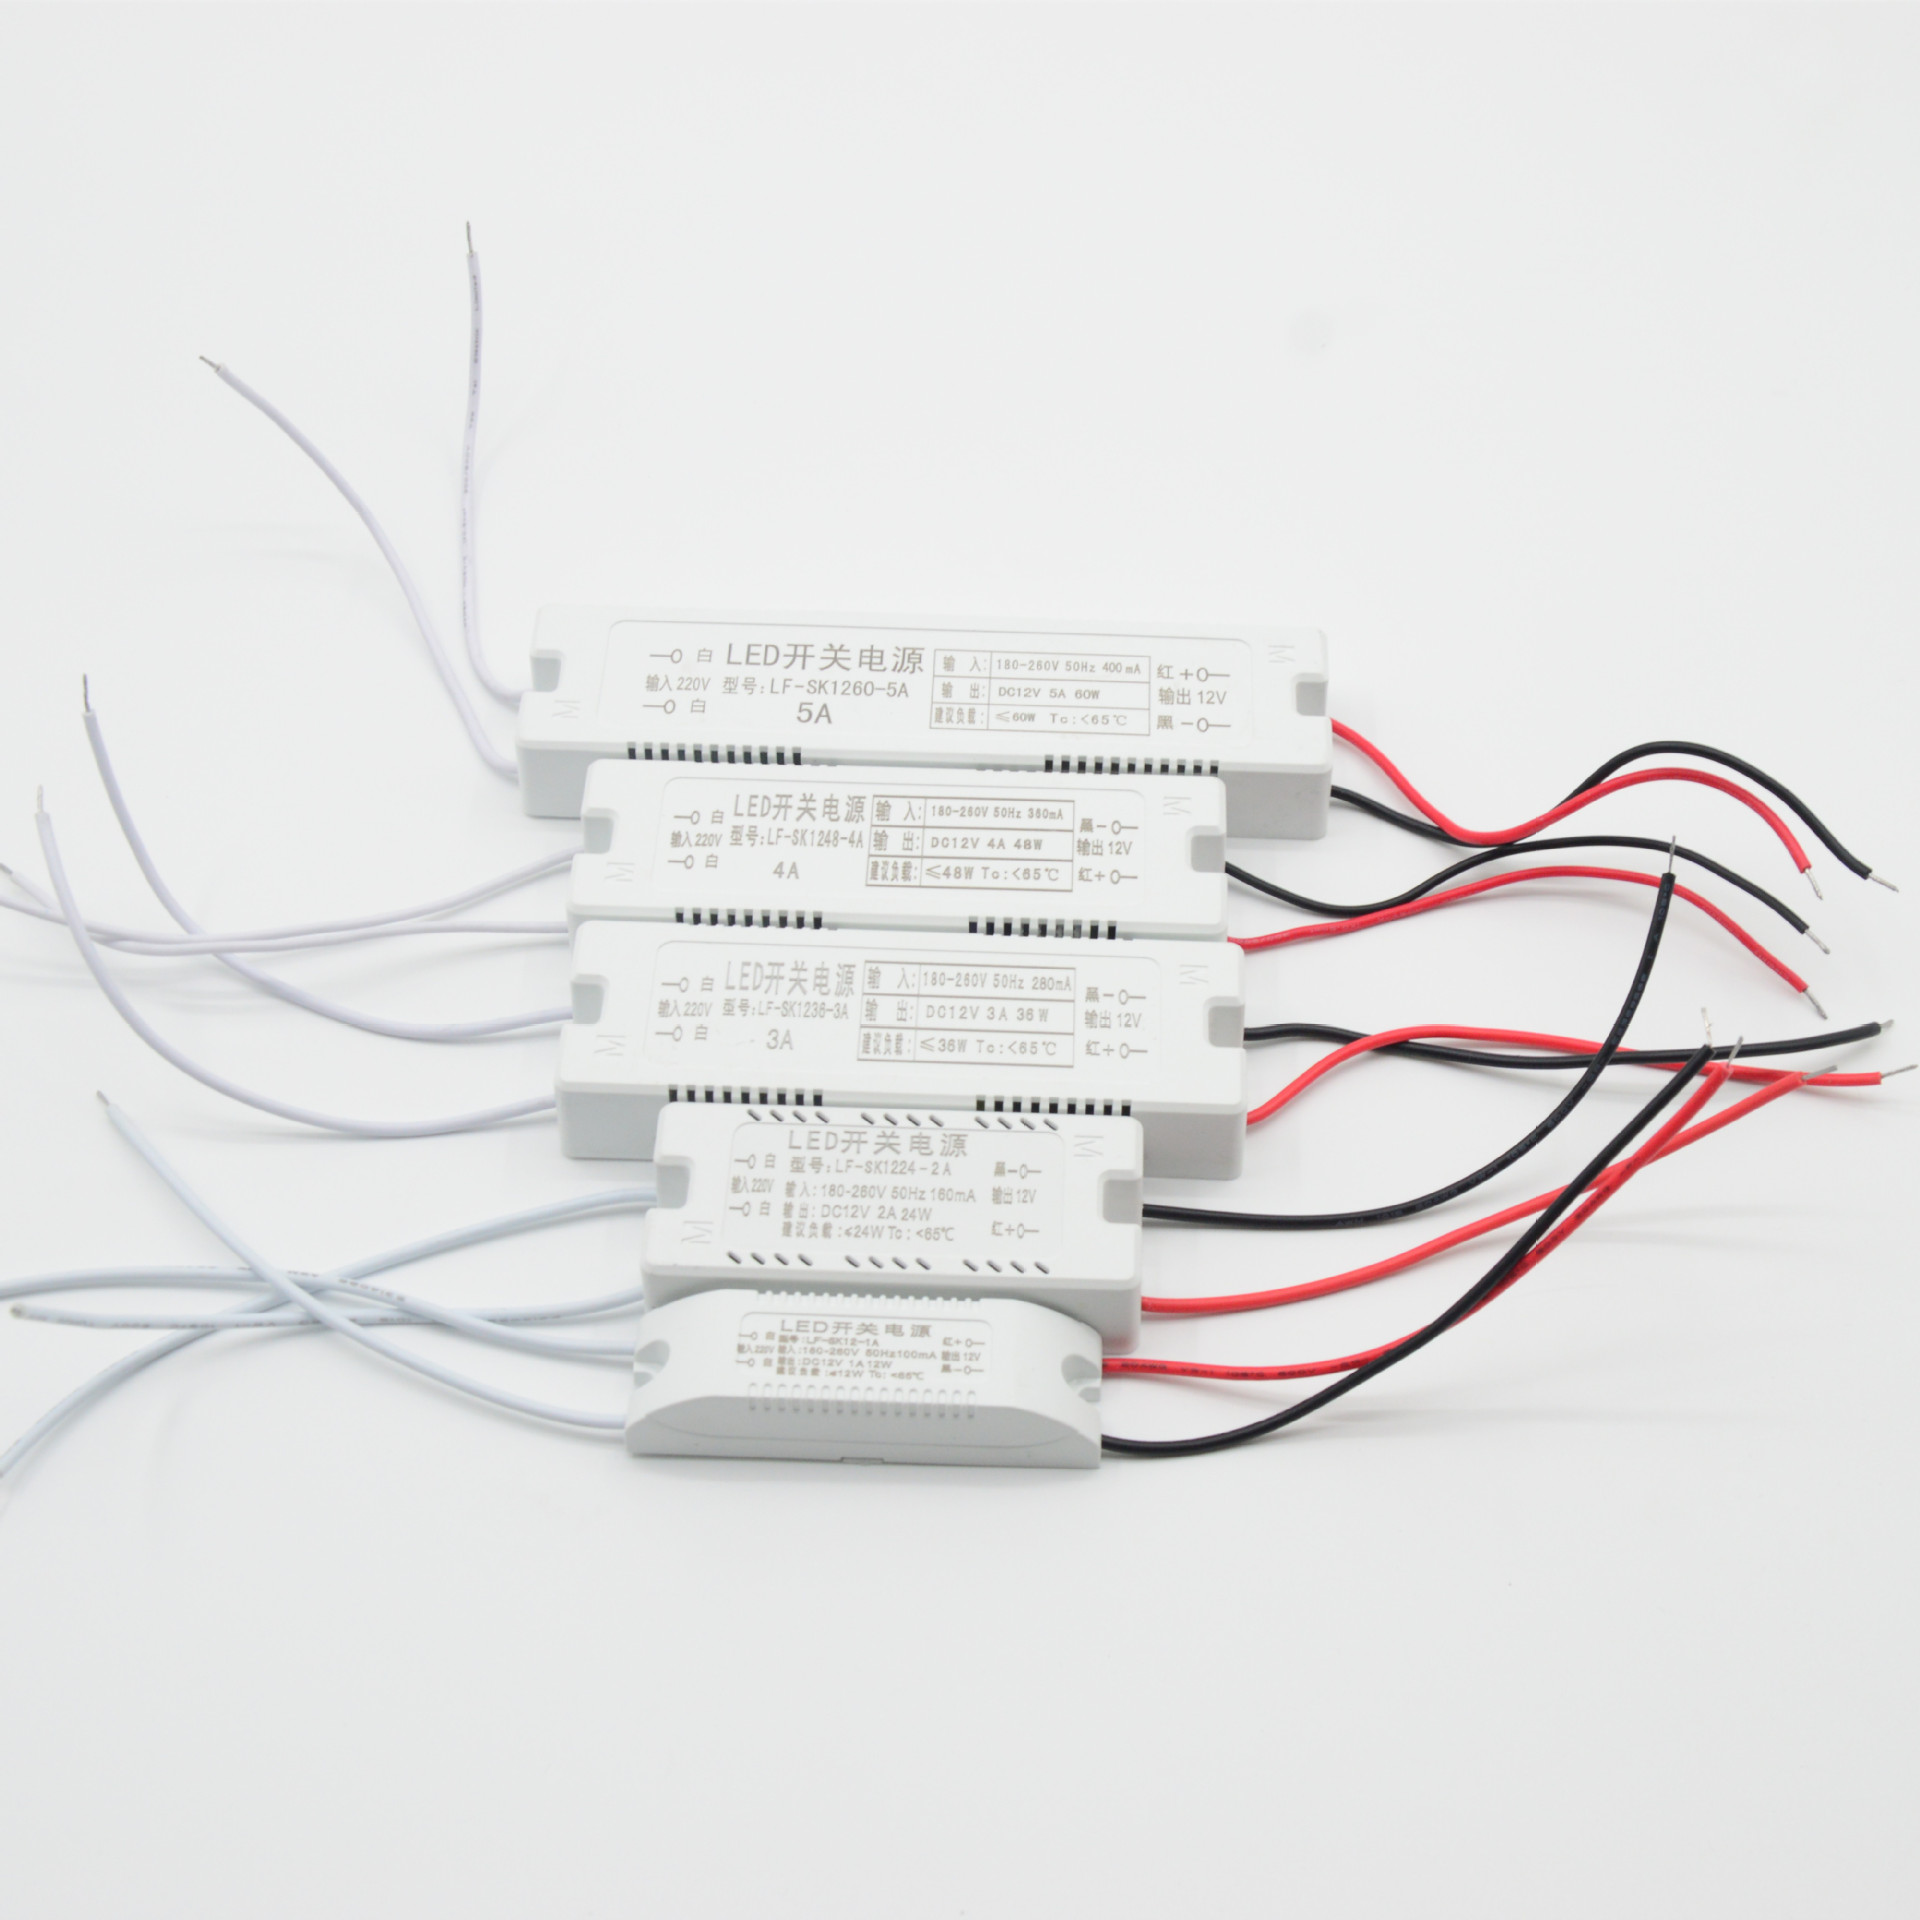 LED Power Supply DC12V/24V 12W 18W 24W 36W 48W 60W 72W Lighting Transformers AC110-220V Driver For LED Strips